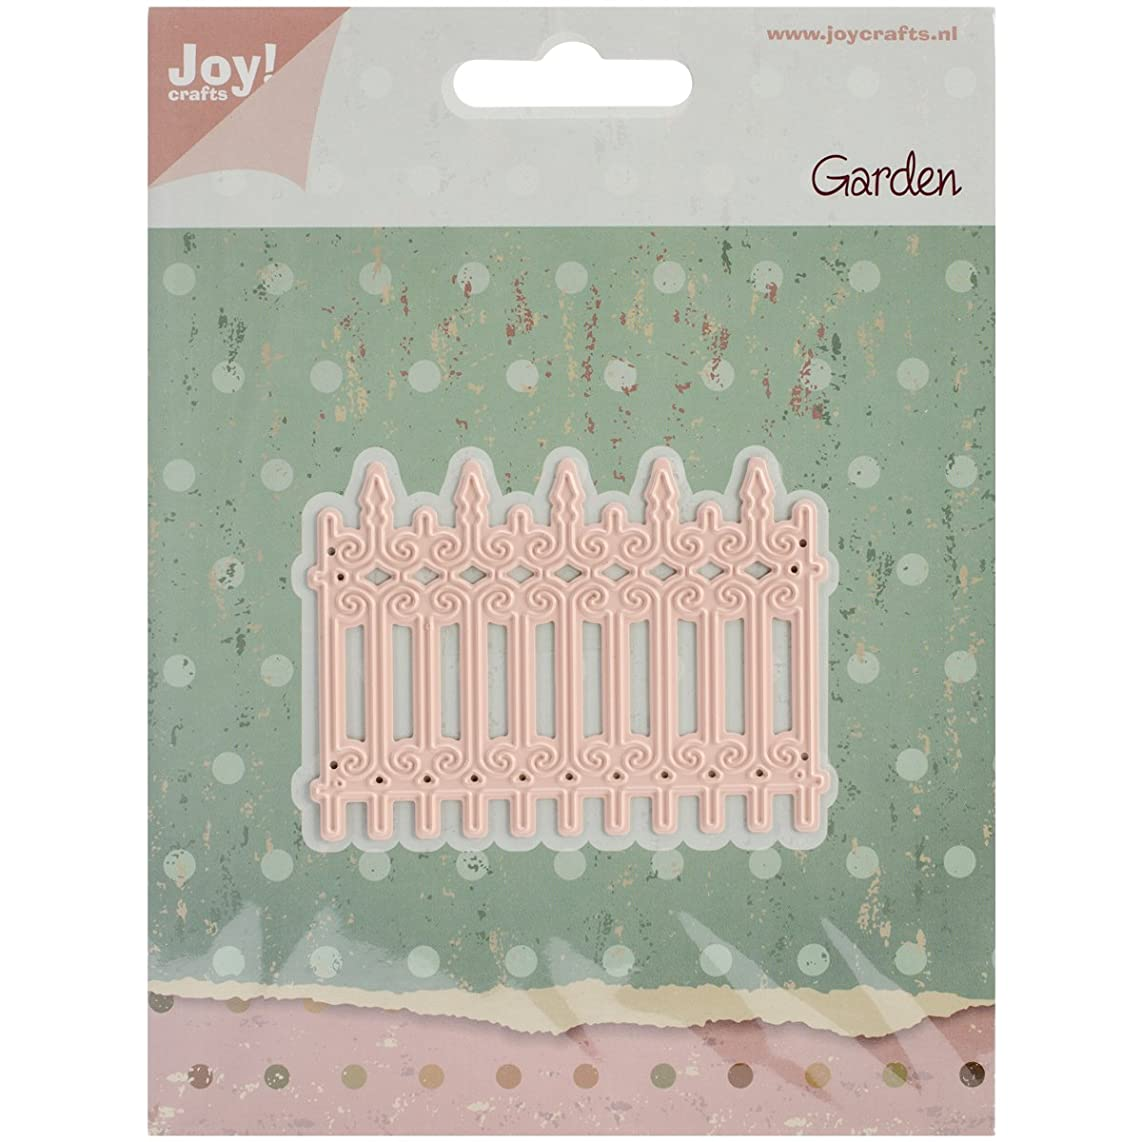 Joy! Crafts Cutting and Embossing Die, Fence